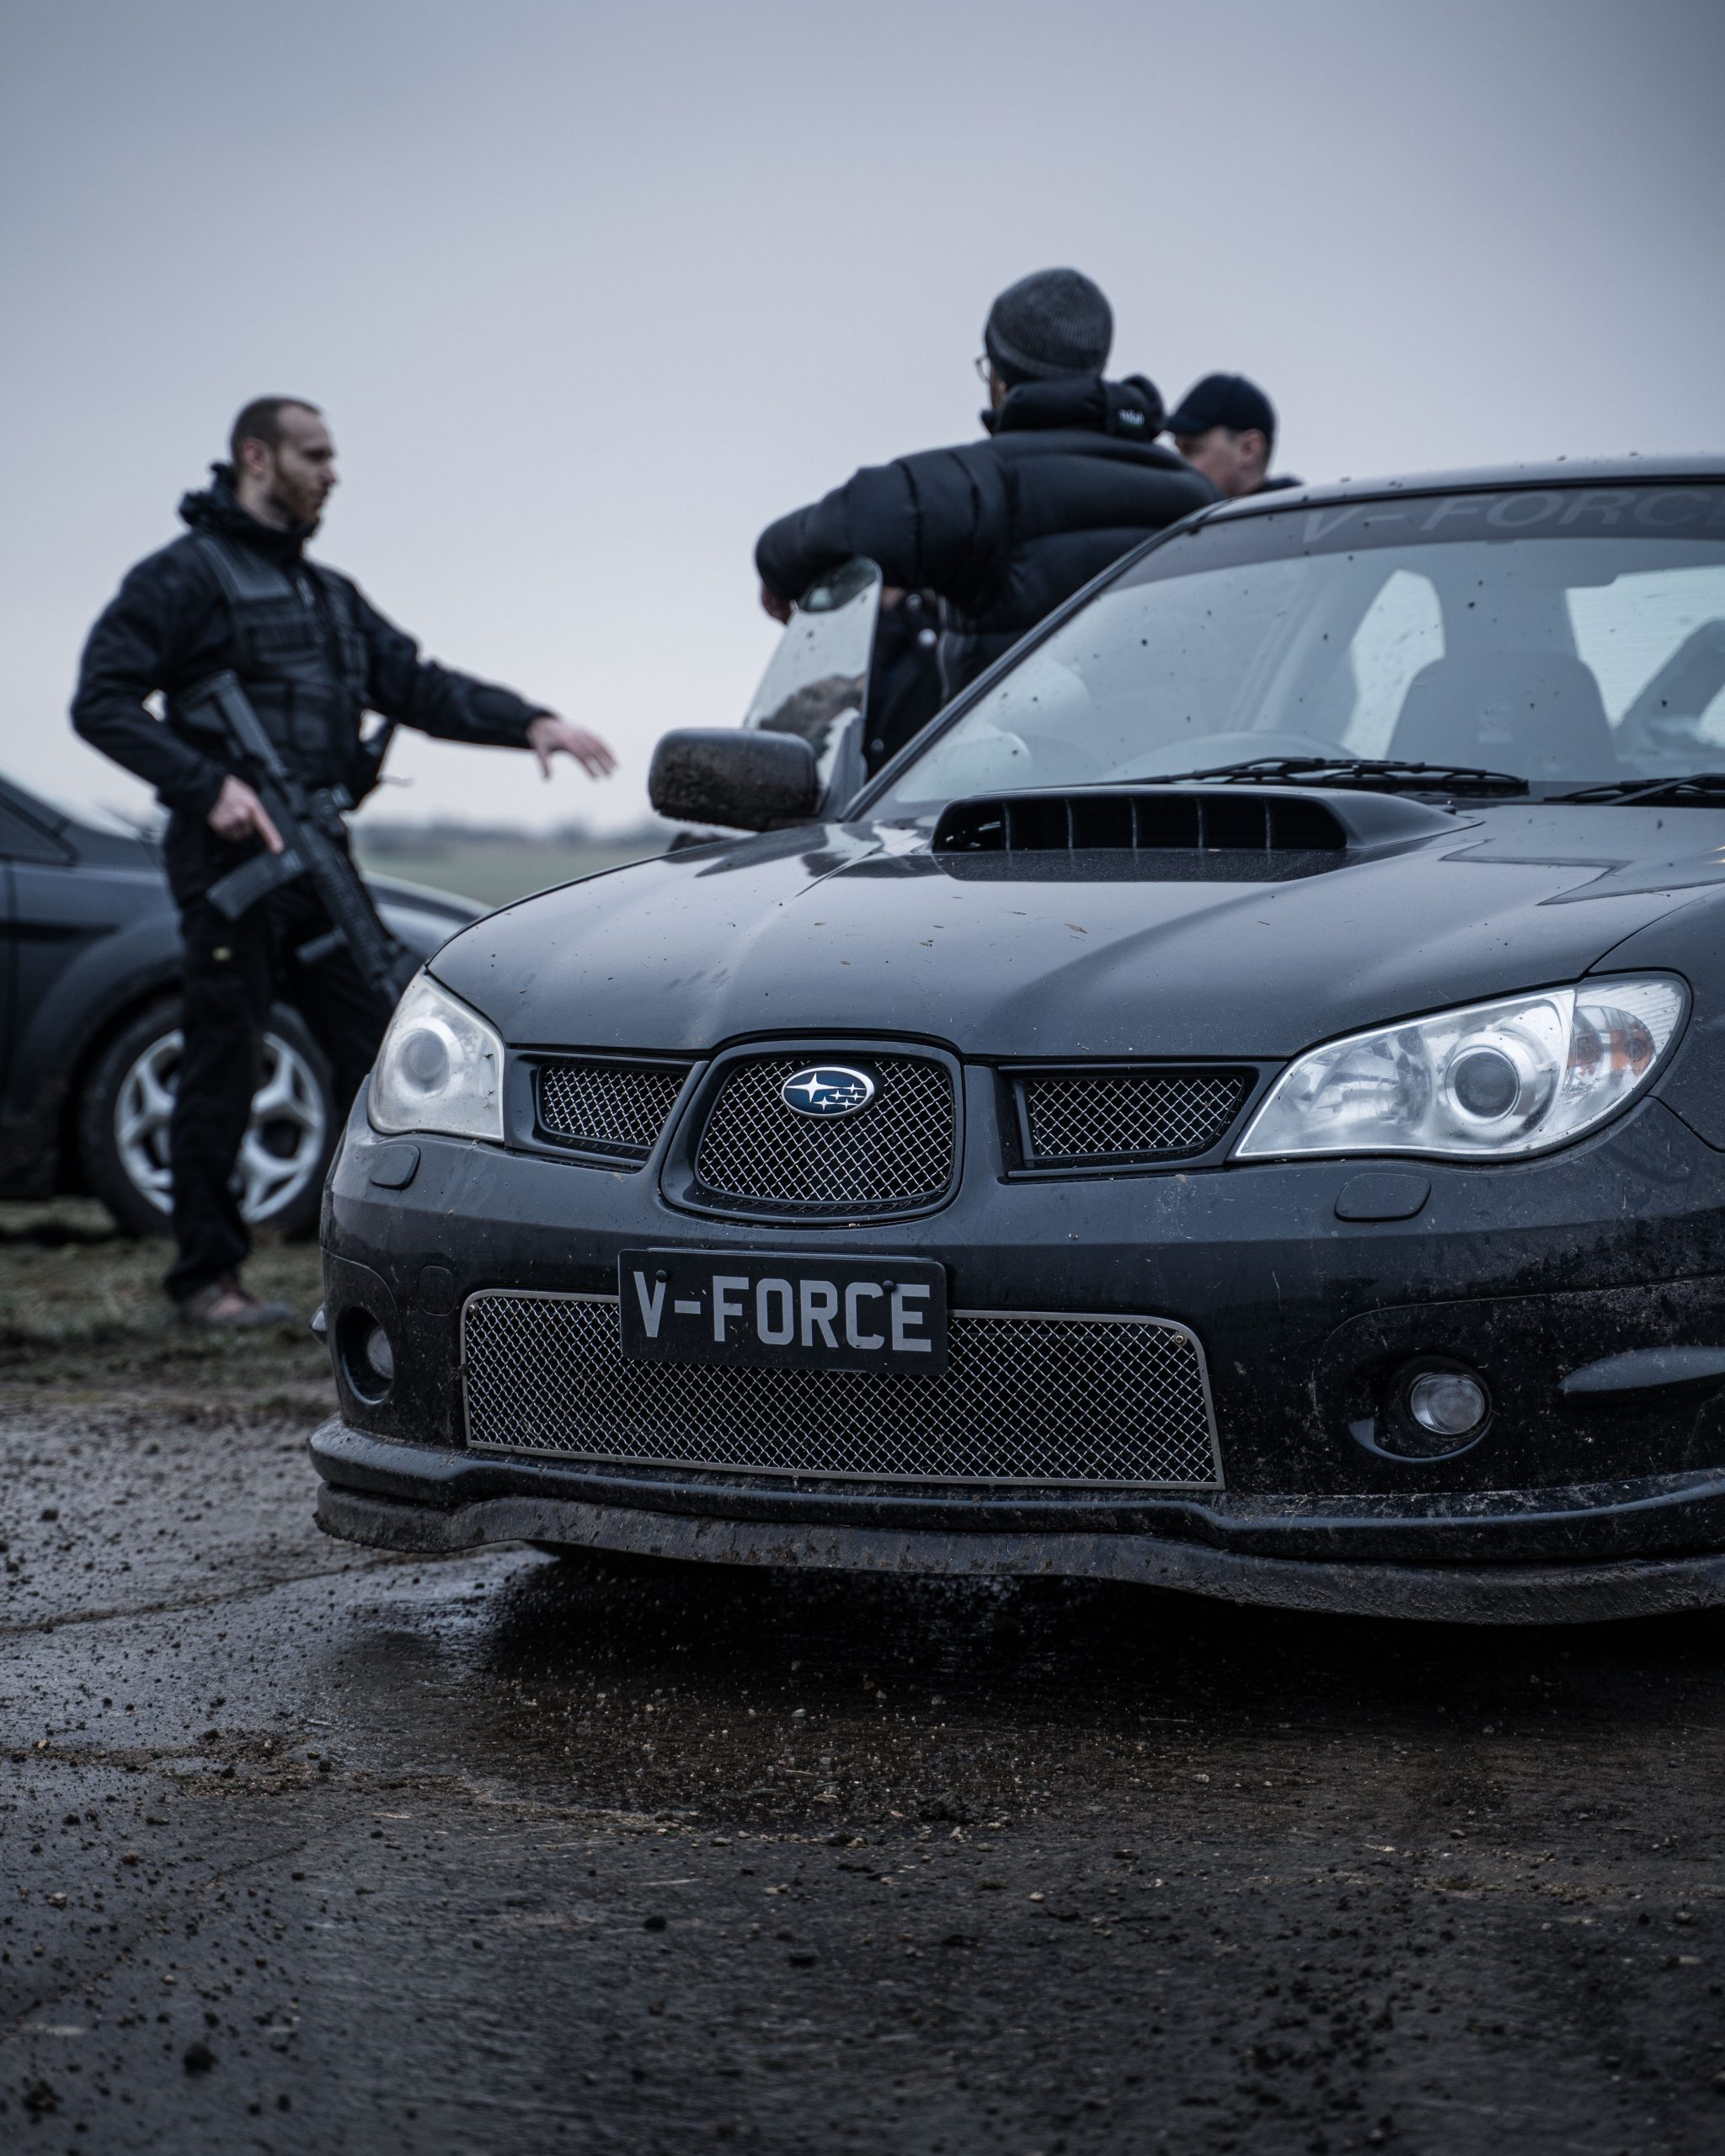 Men dressed in black standing next to a Subaru Rally Car with a C8 assault rifle as part of Vehicle Gunnery